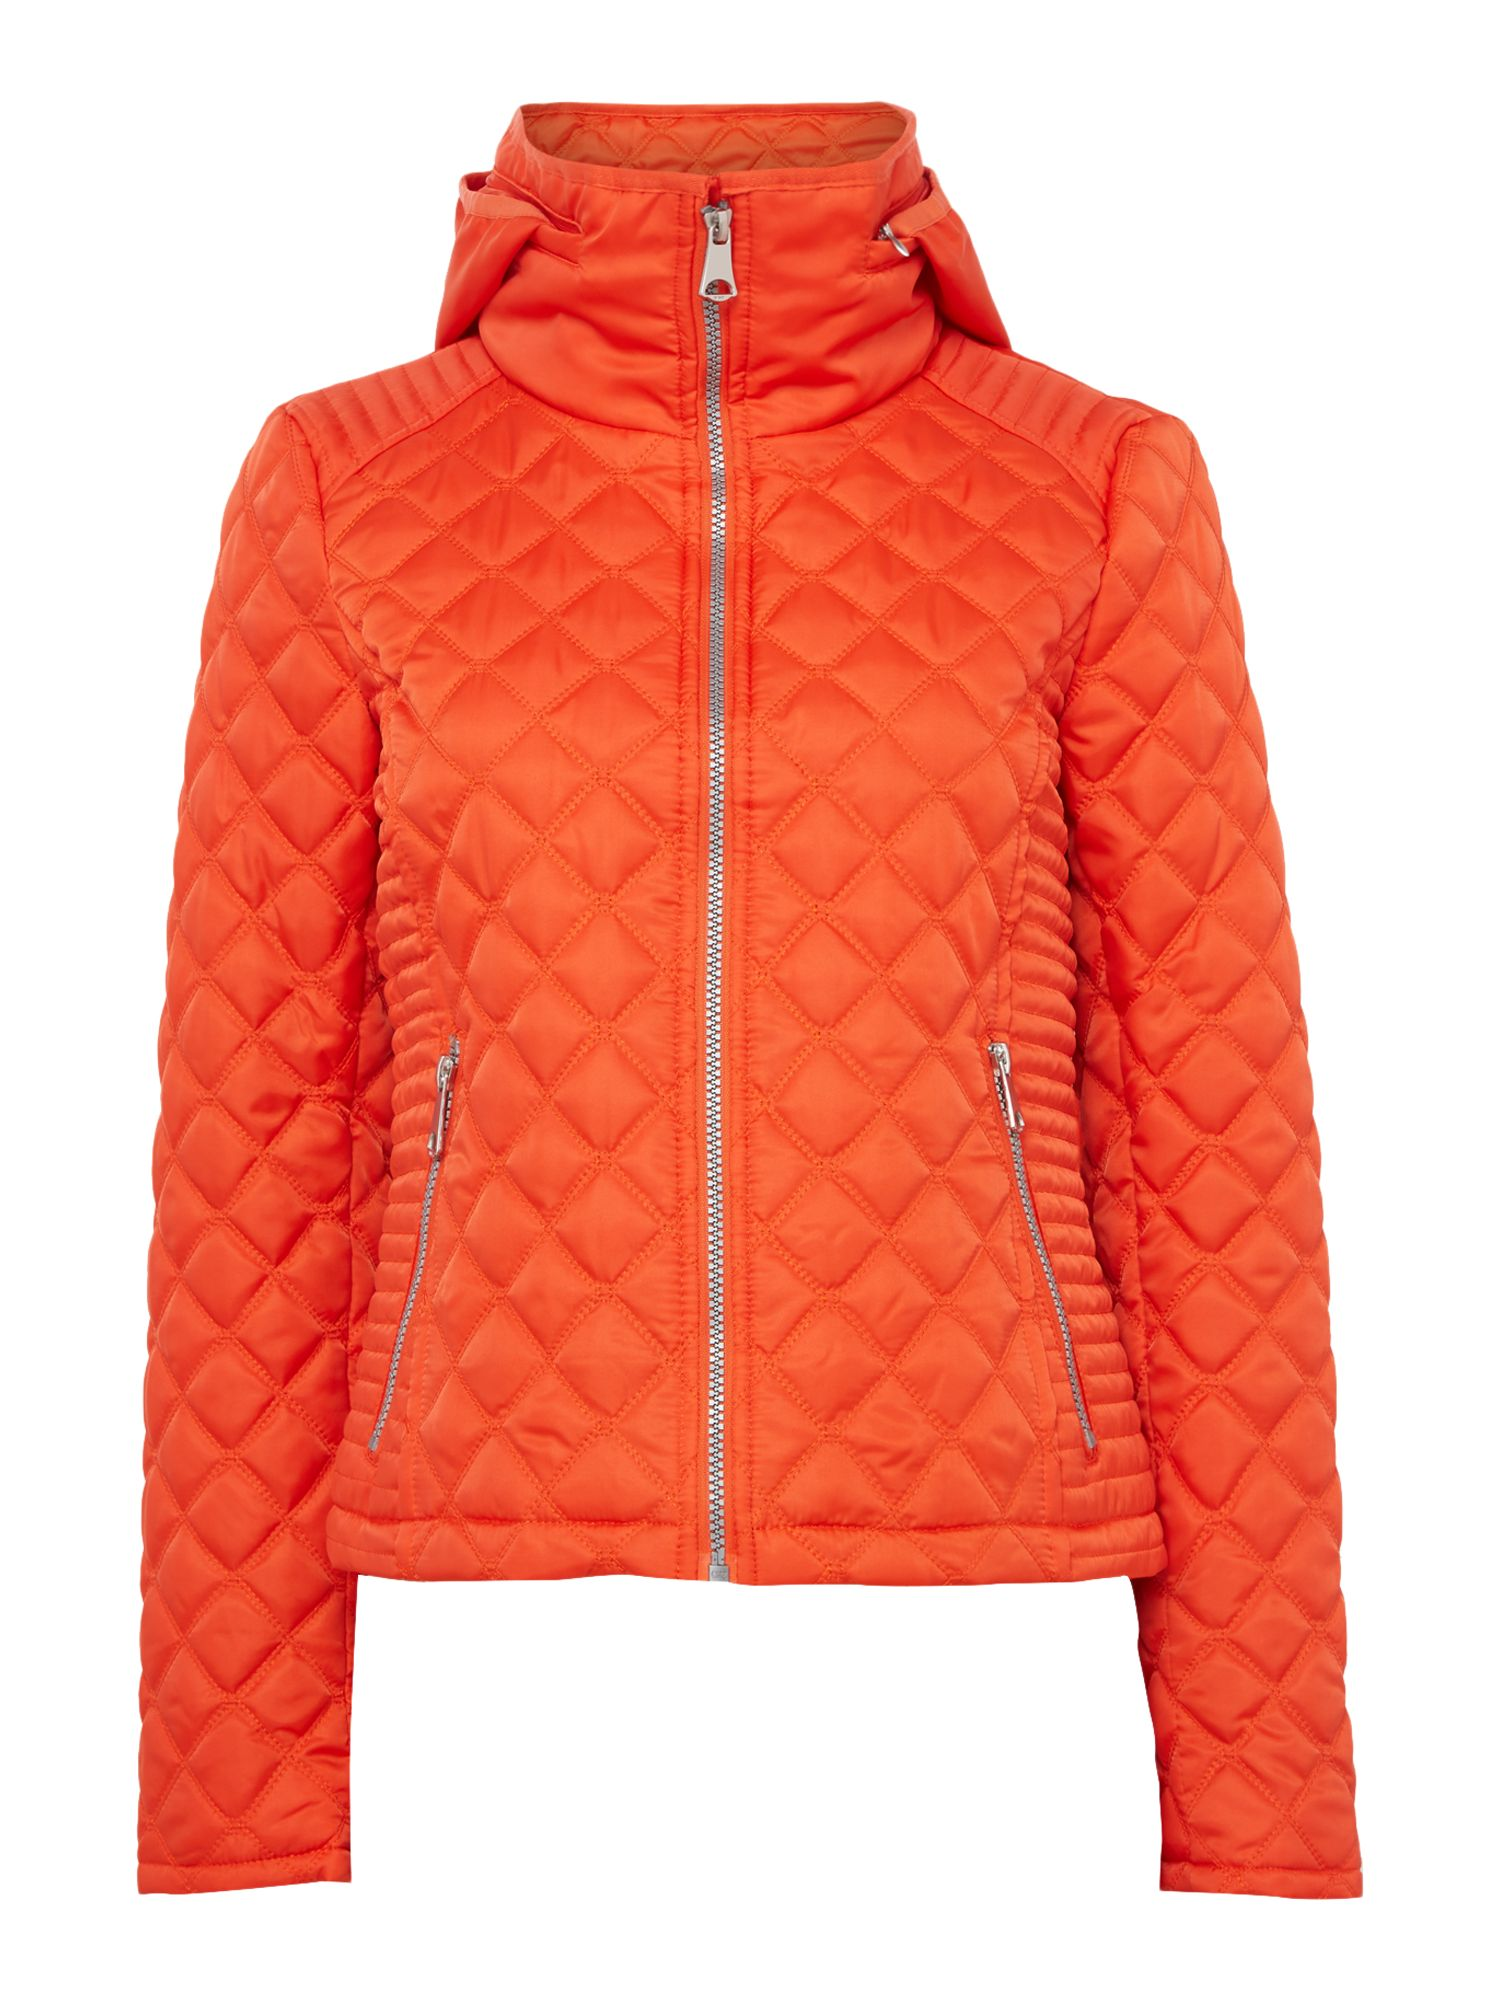 Andrew Marc Quilted jacket with zip detail sleeve, Orange